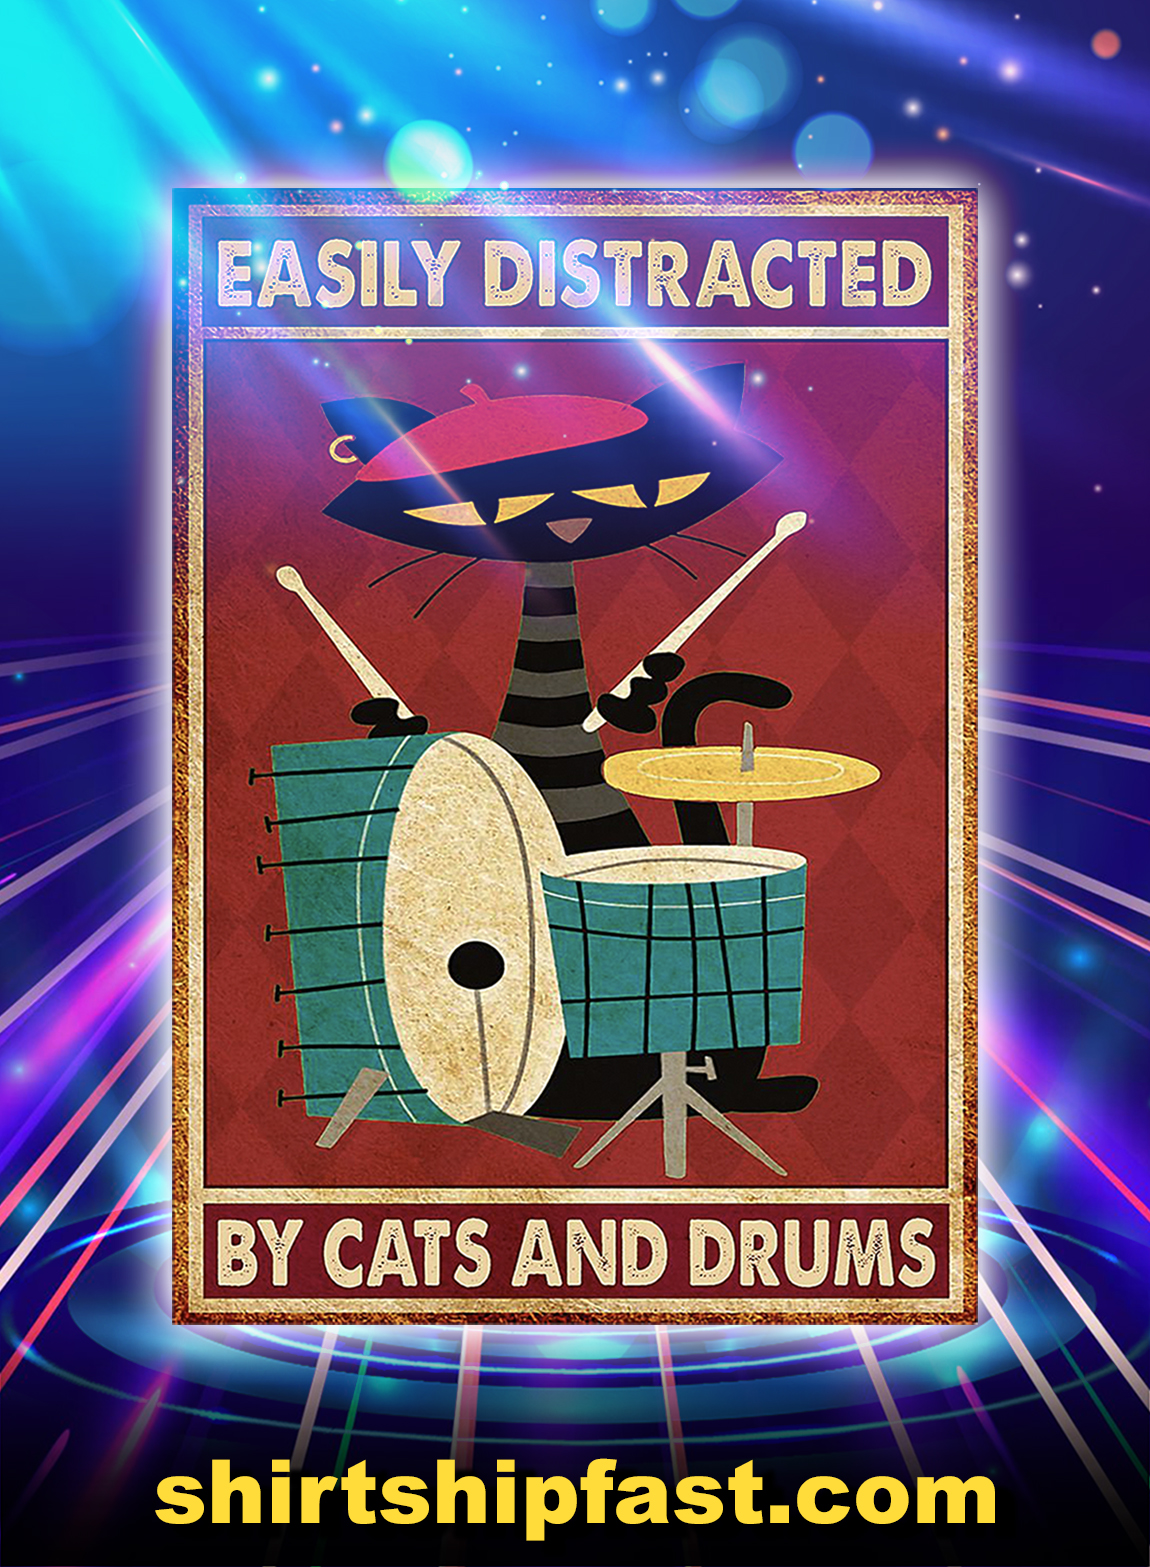 Music Cat Drum Easily Distracted Poster - A2